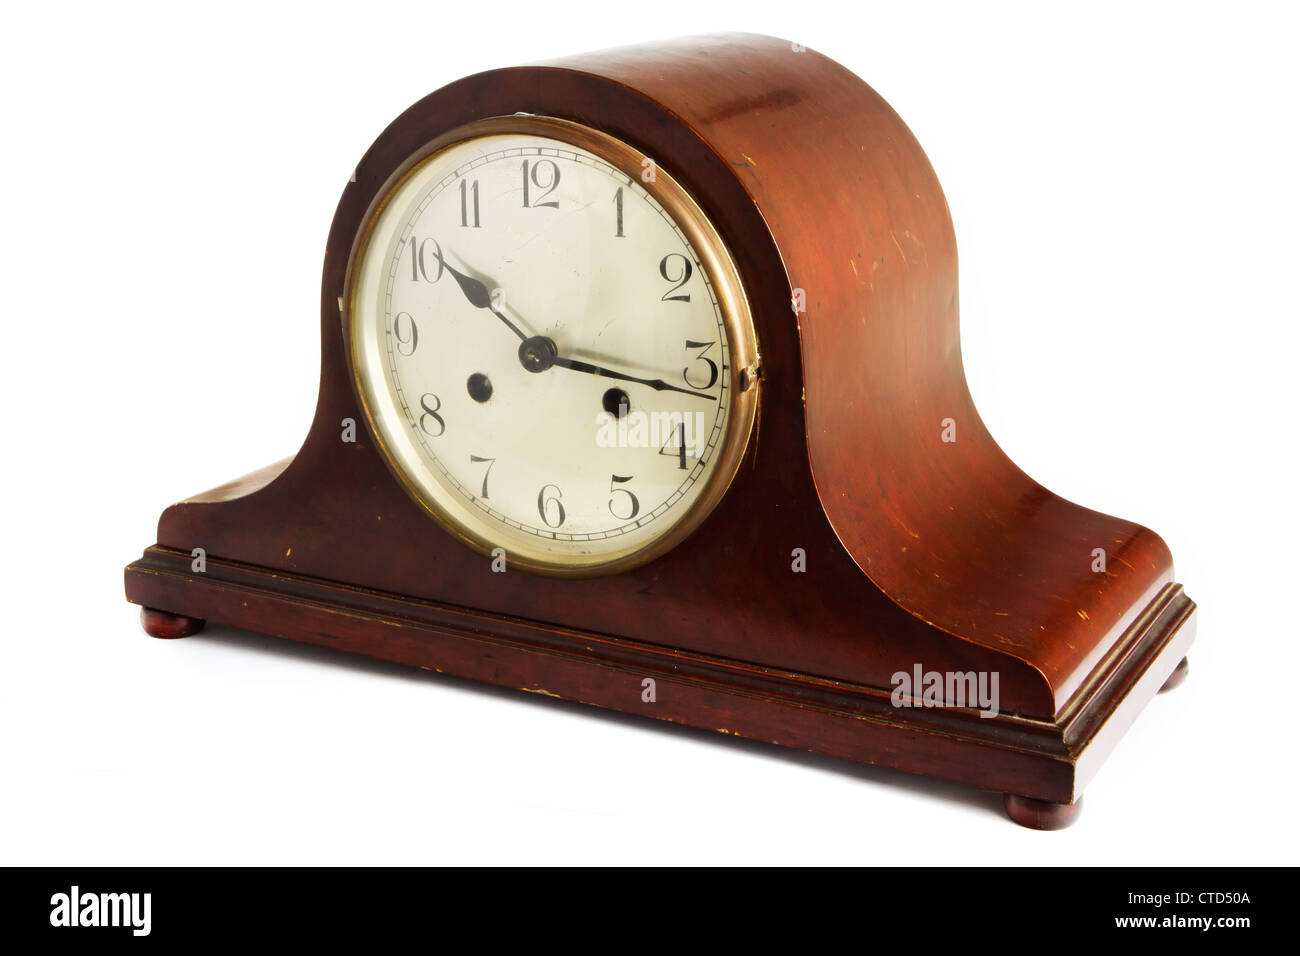 Antique wooden clock on a white background Stock Photo